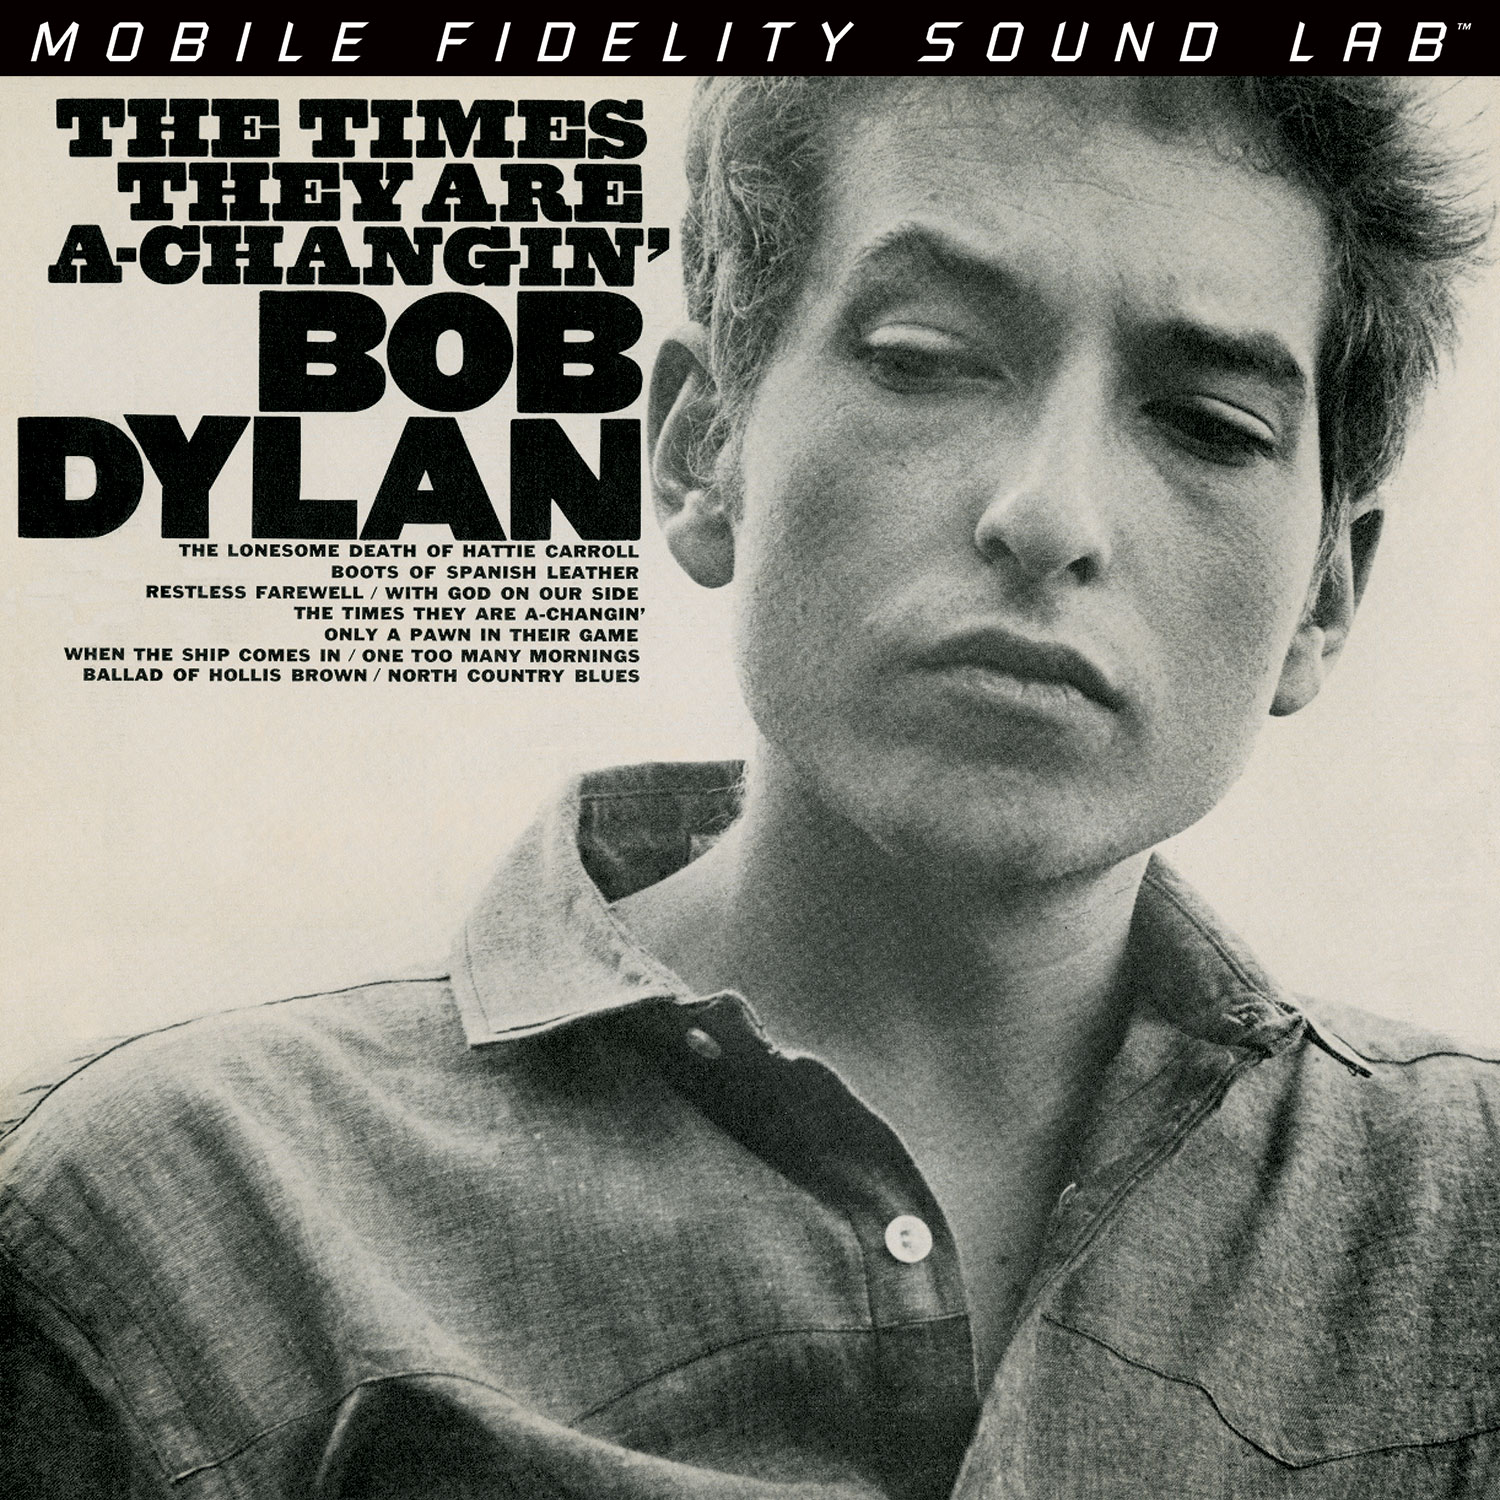 Bob Dylan: The Times They Are A Changin' -  MFSL Hybrid Stereo SACD (UDSACD 2123)